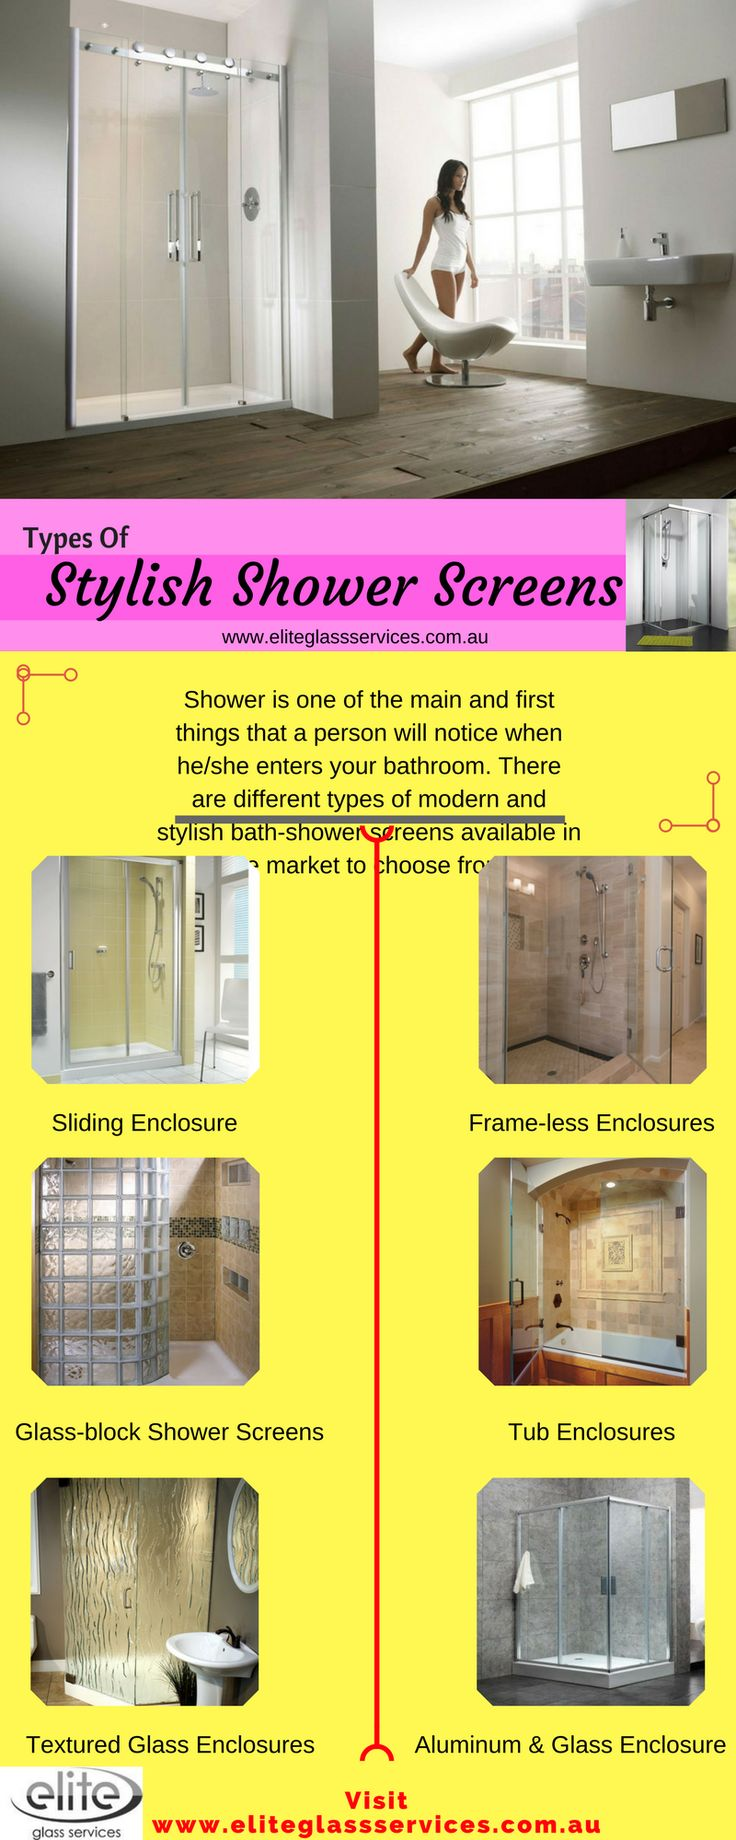 best 25 bath shower screens ideas on pinterest bath shower there are different types of modern and stylish bath shower screens available in the